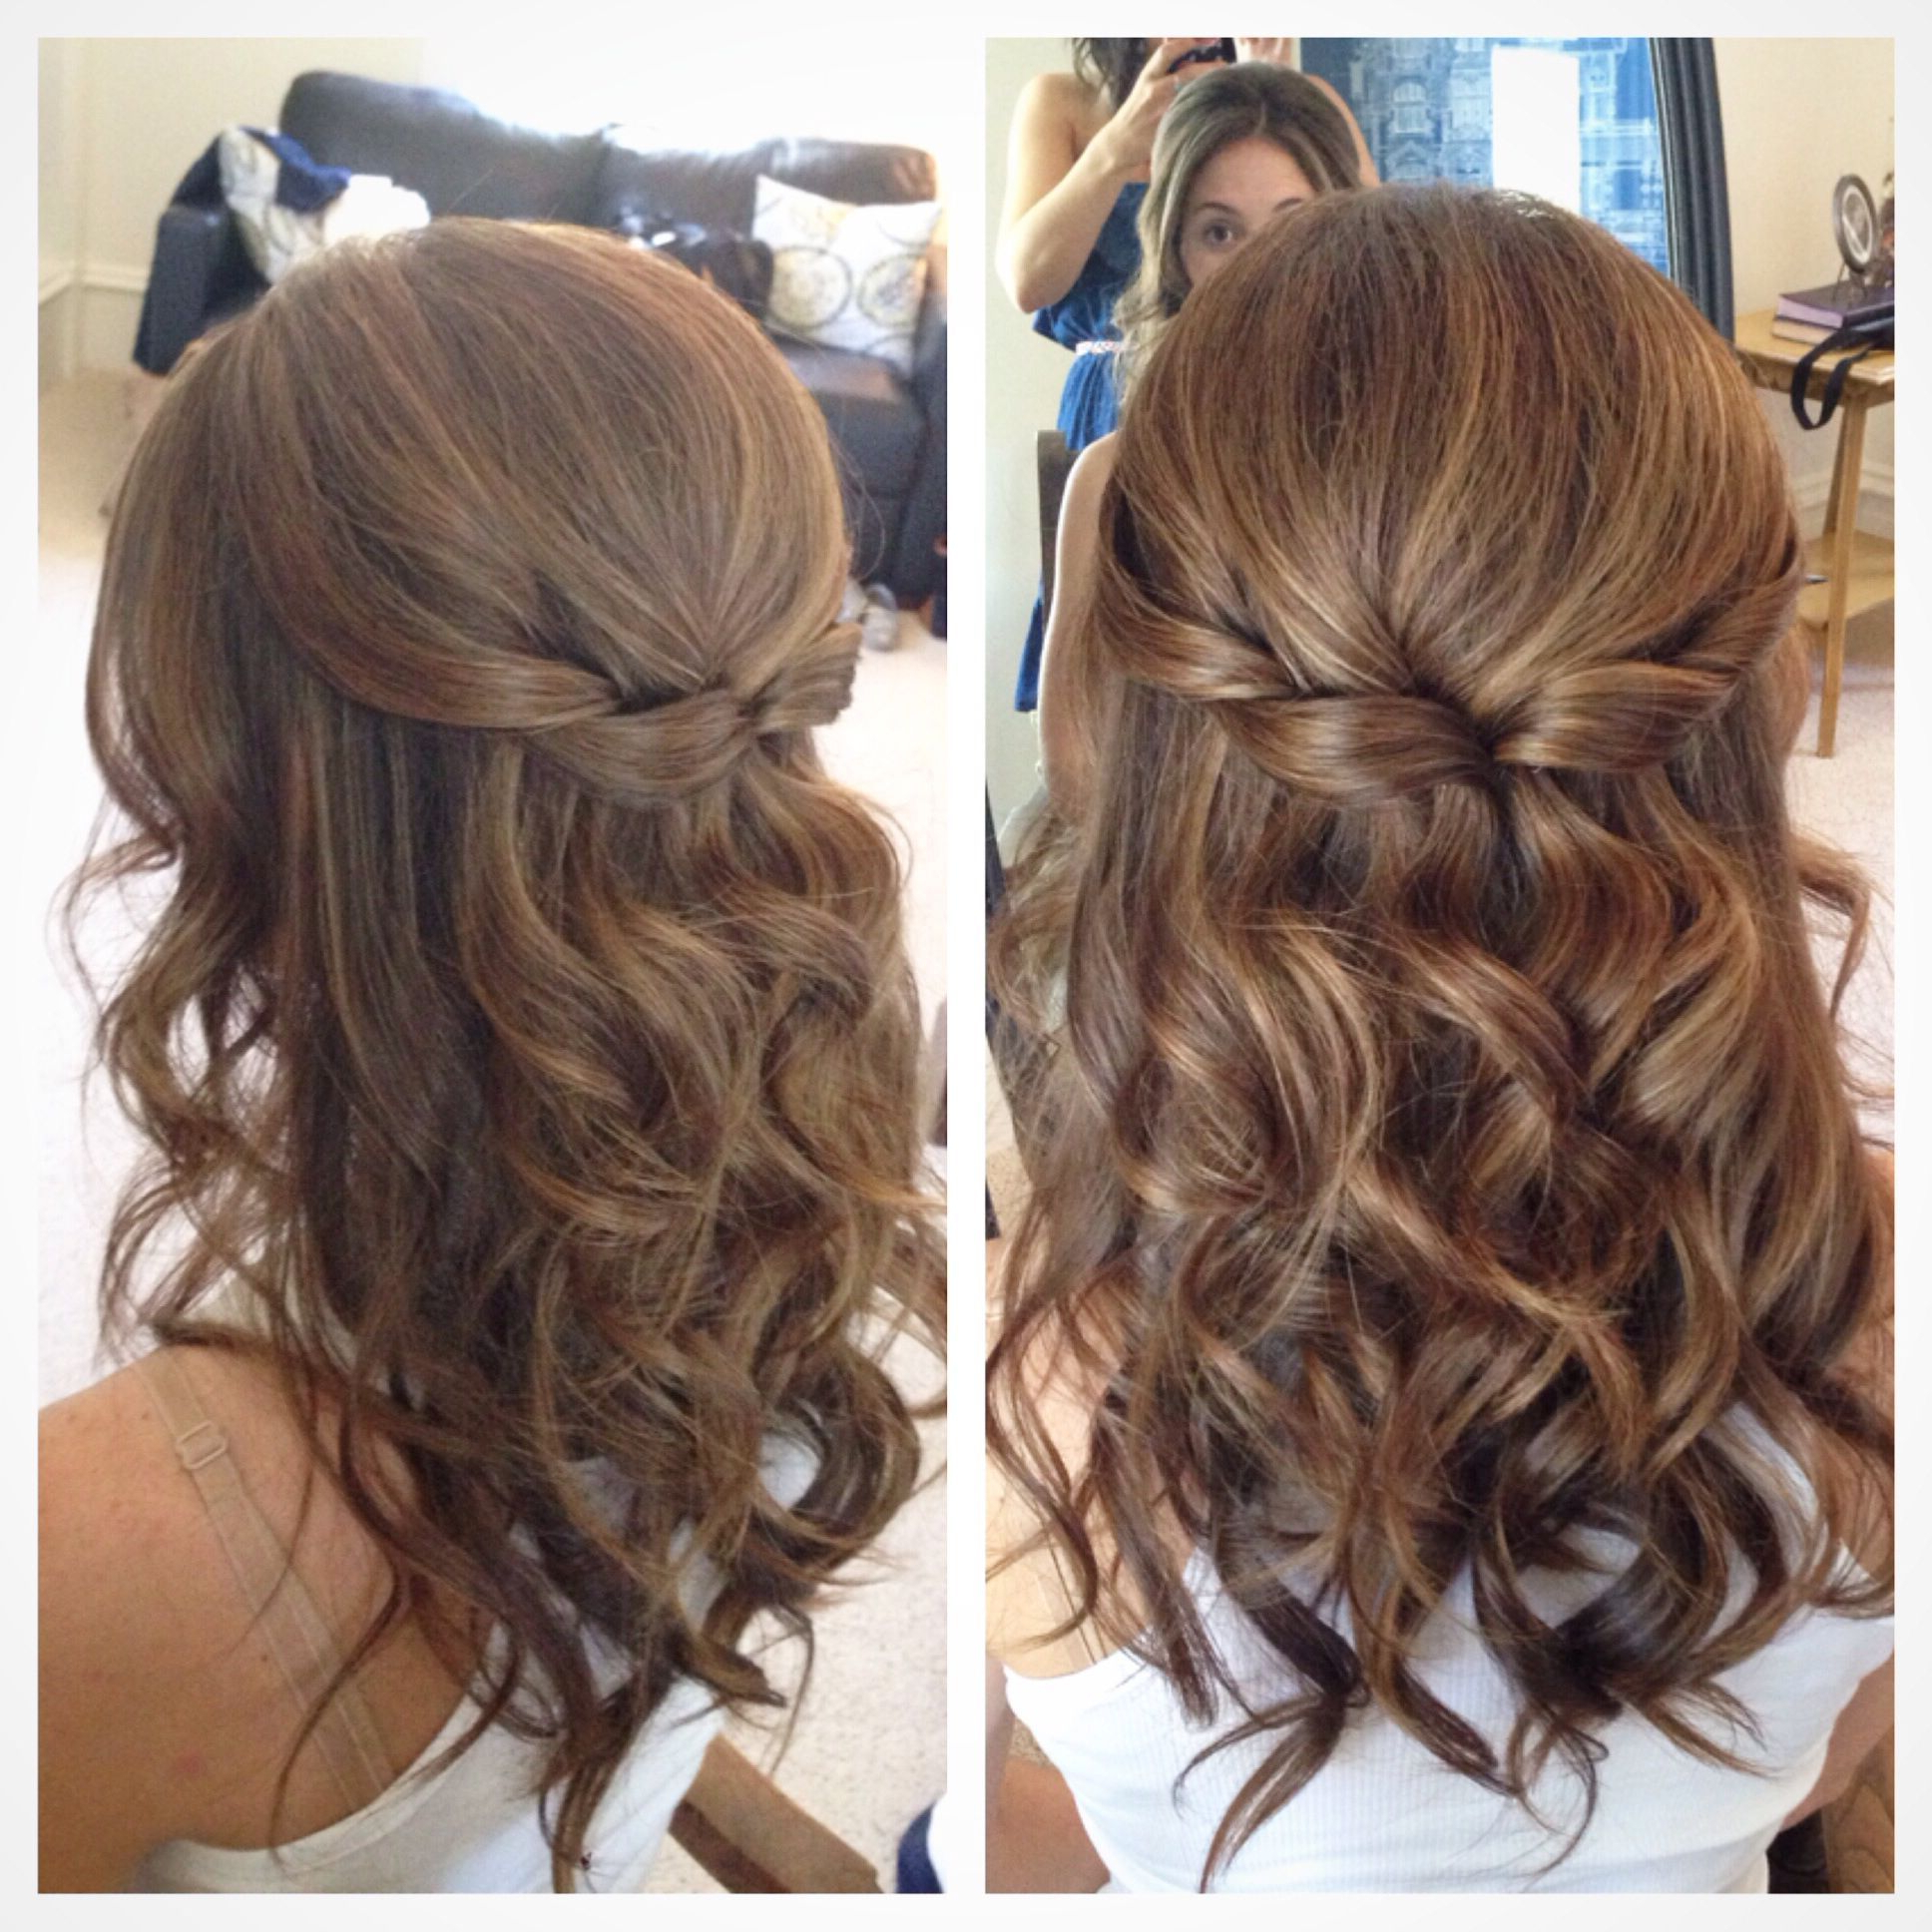 Widely Used Down Medium Hairstyles Regarding Half Up Half Down Hair, Wedding Hair, Pretty Hair But With Softer (View 5 of 20)